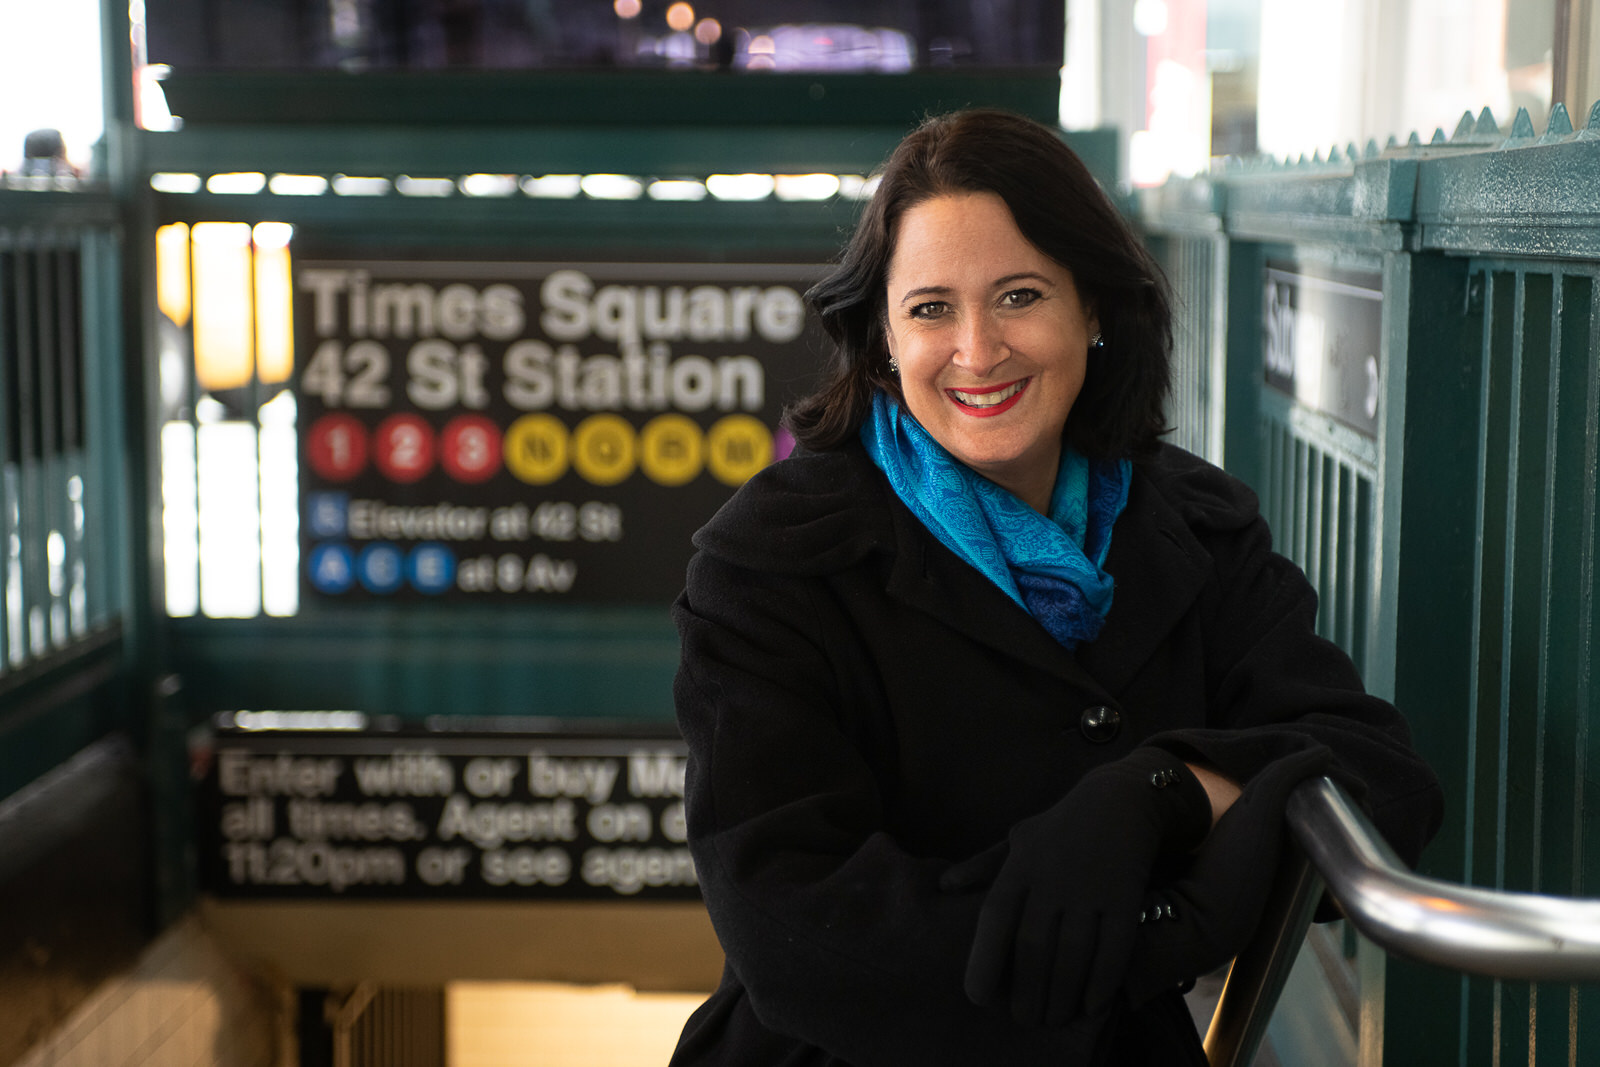 Mindy Gibbins Klein the Book Midwife standing in the entrance to the Times Square subway station